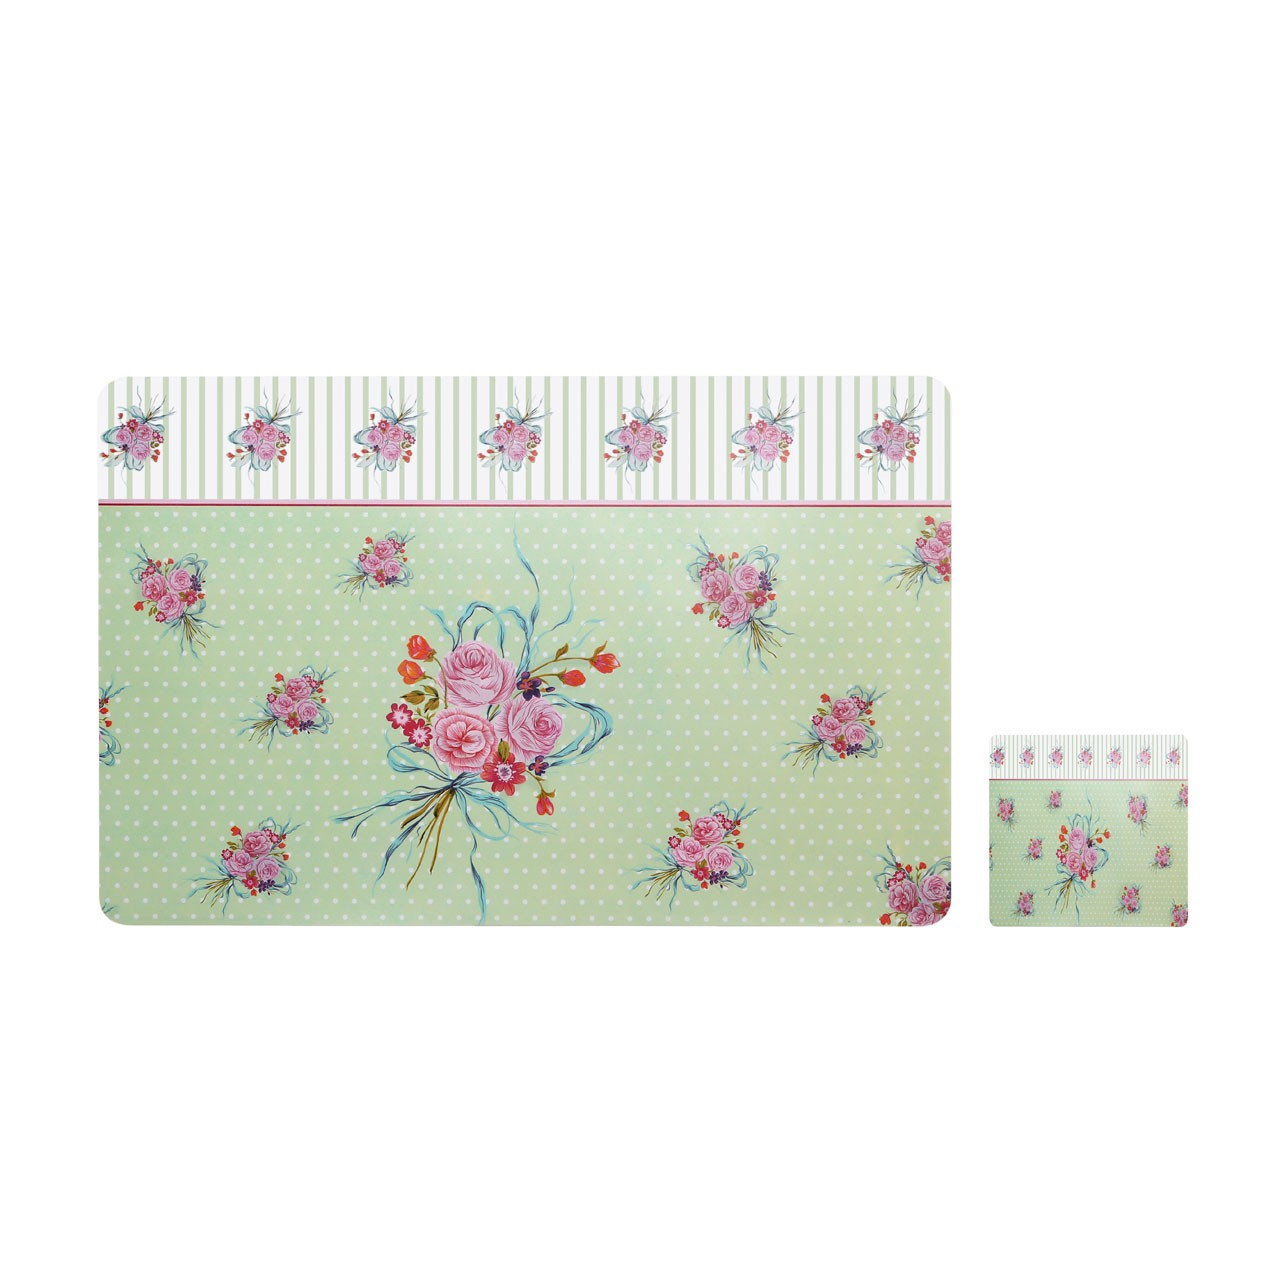 Different designs Set Of 4 Placemats And Coasters Ideal for Gift